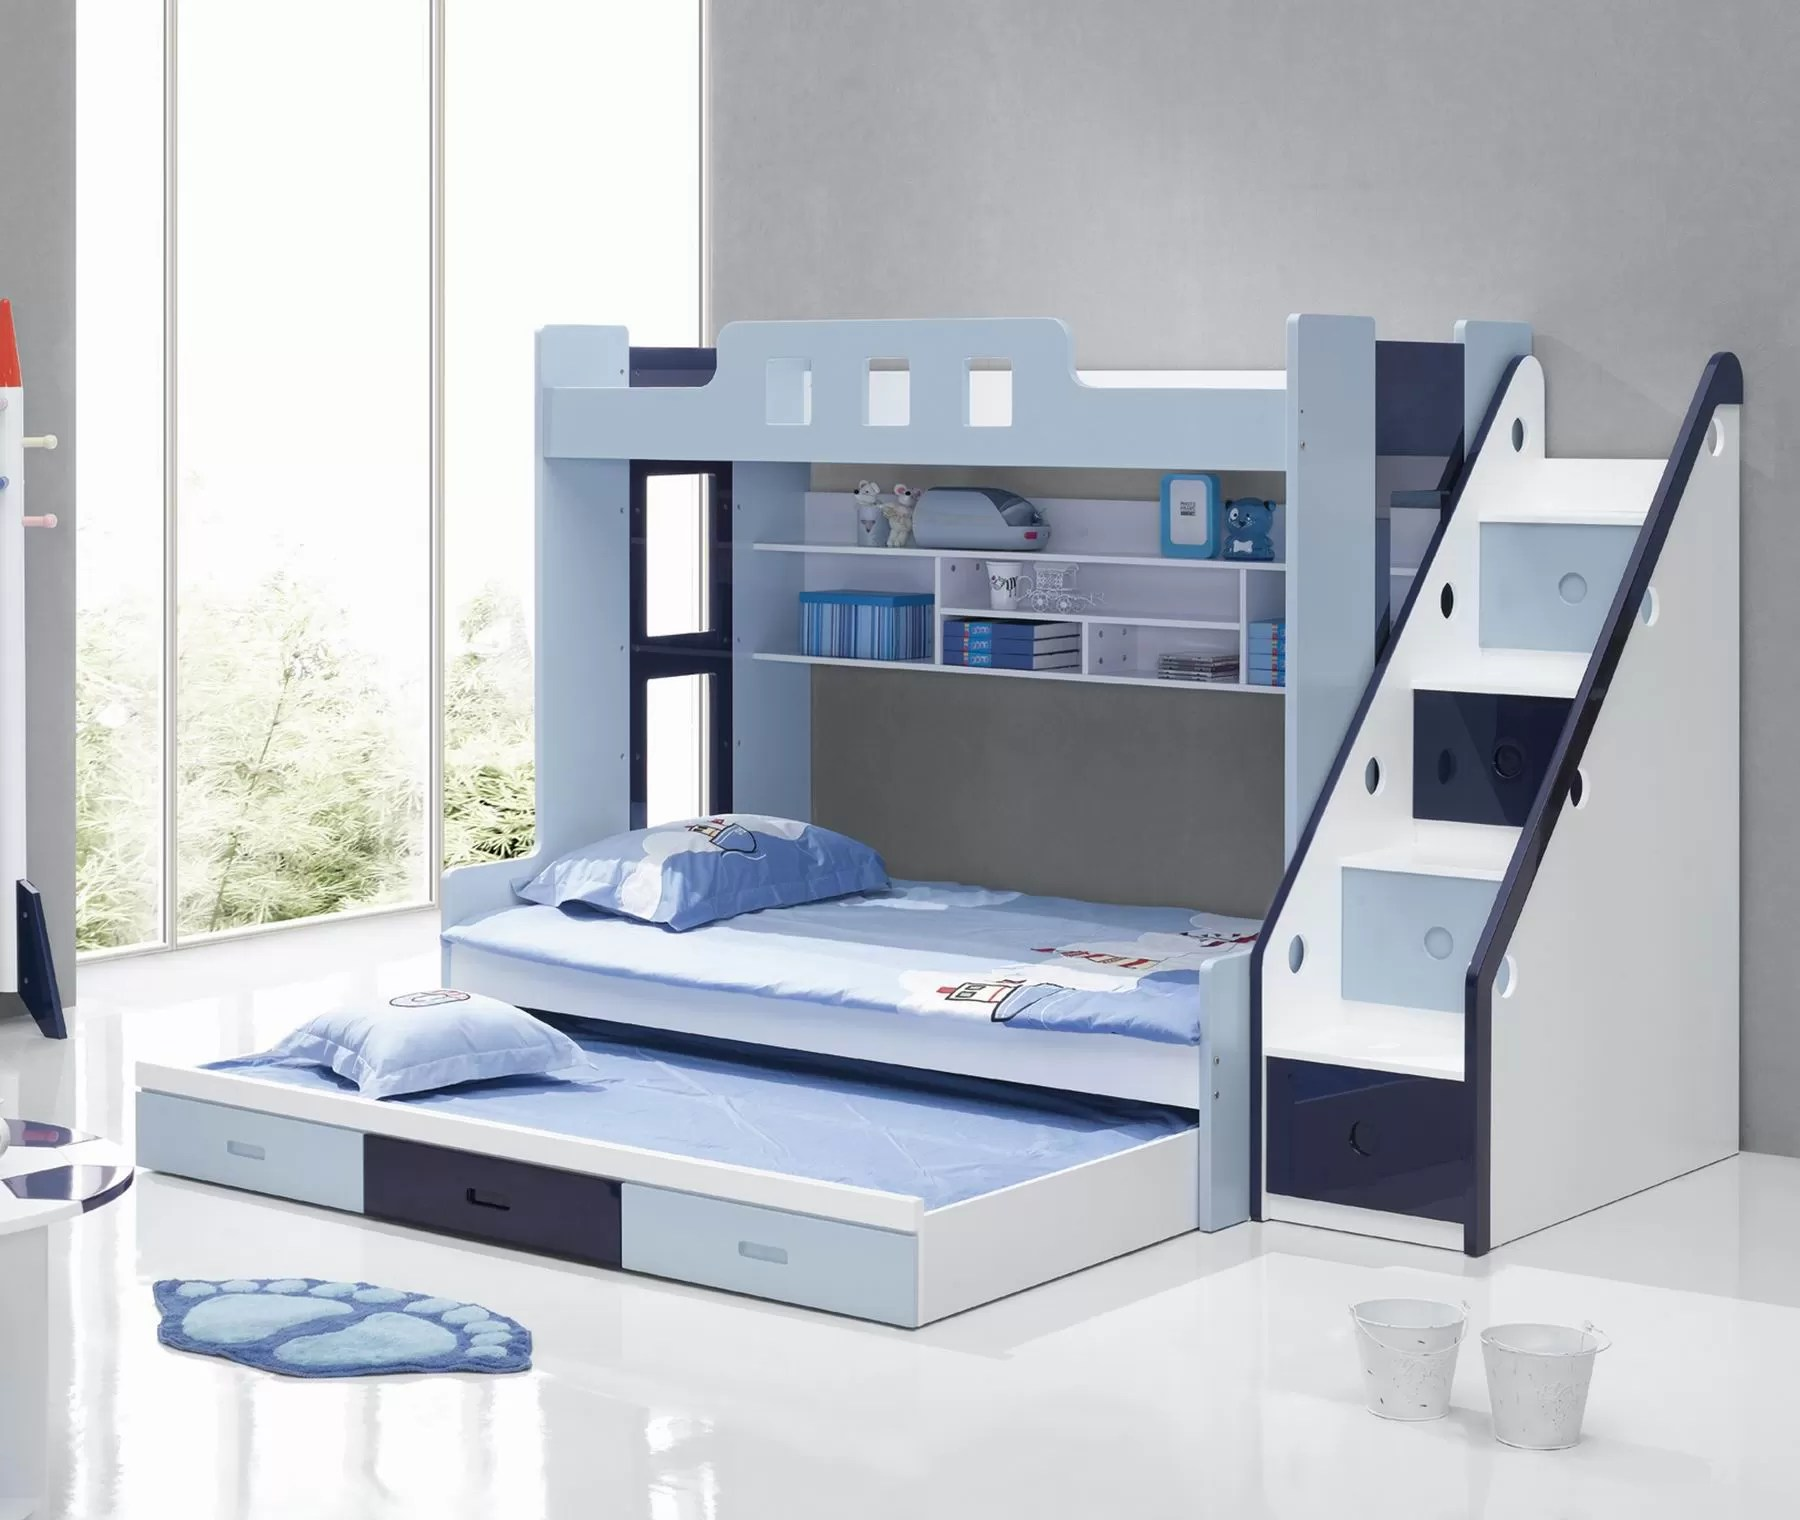 Bunk Beds For Kids 25 Diy Bunk Beds With Plans Guide Patterns